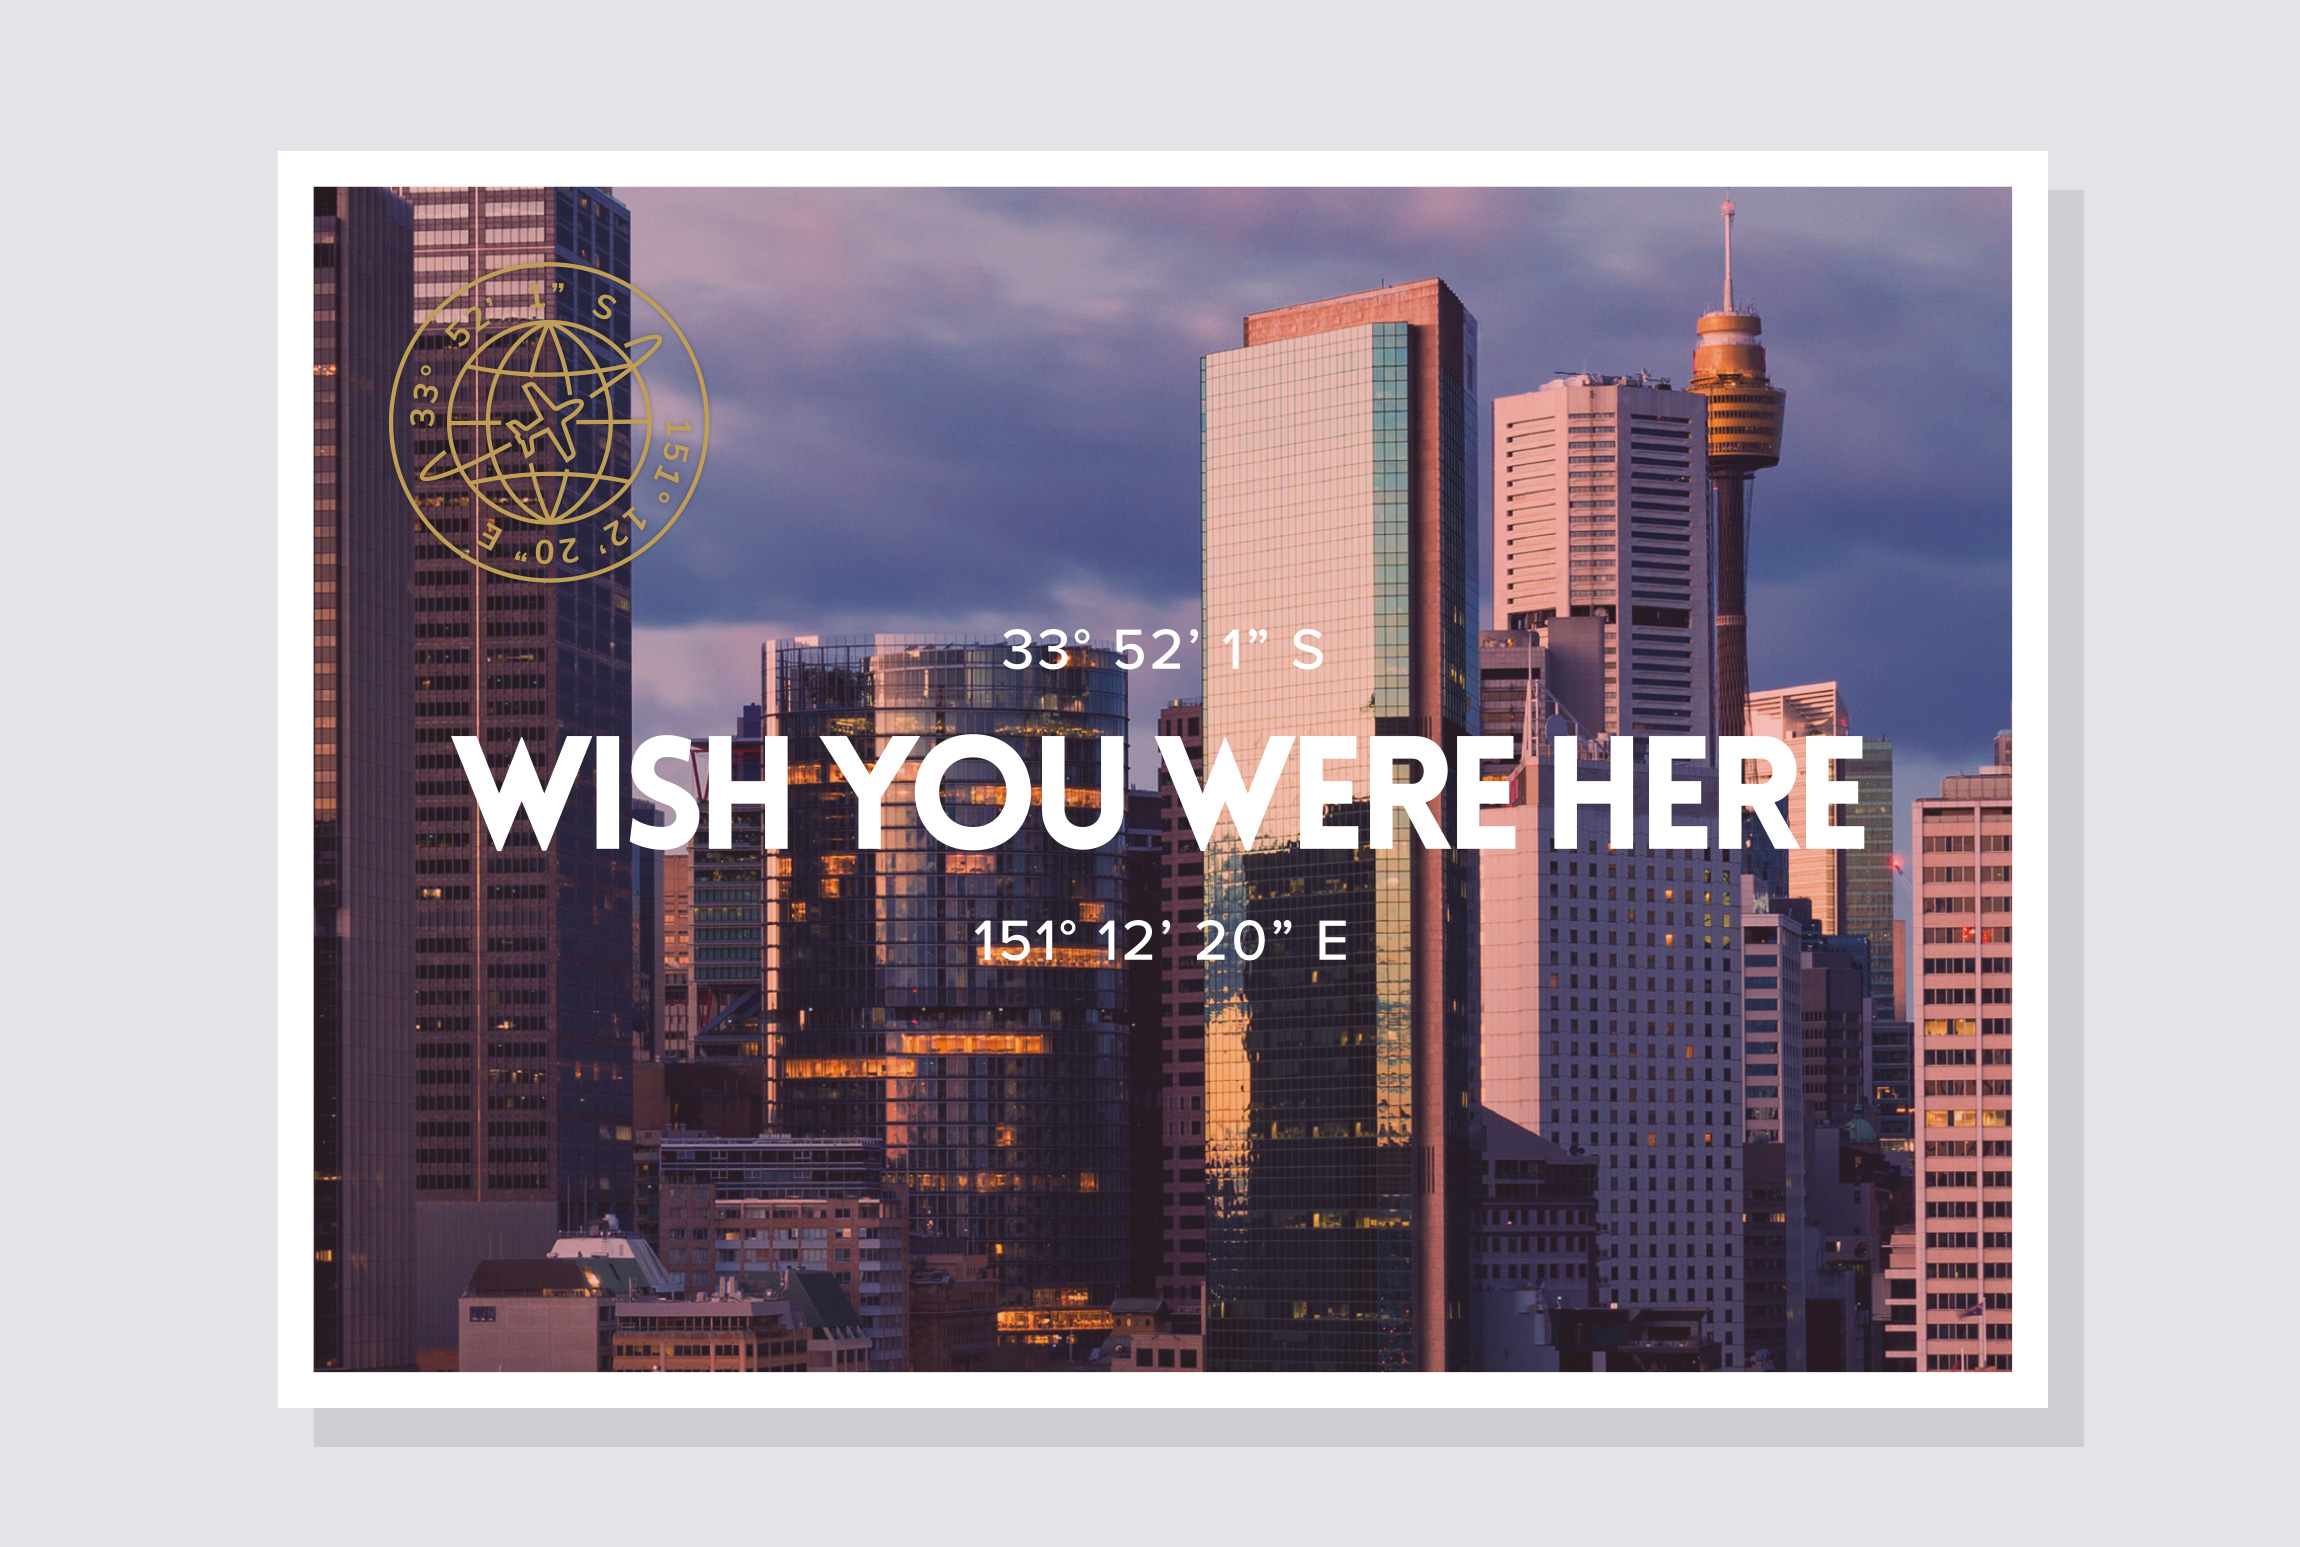 'Wish you were here':  Gold Foil Postcard as With Comps Slip.